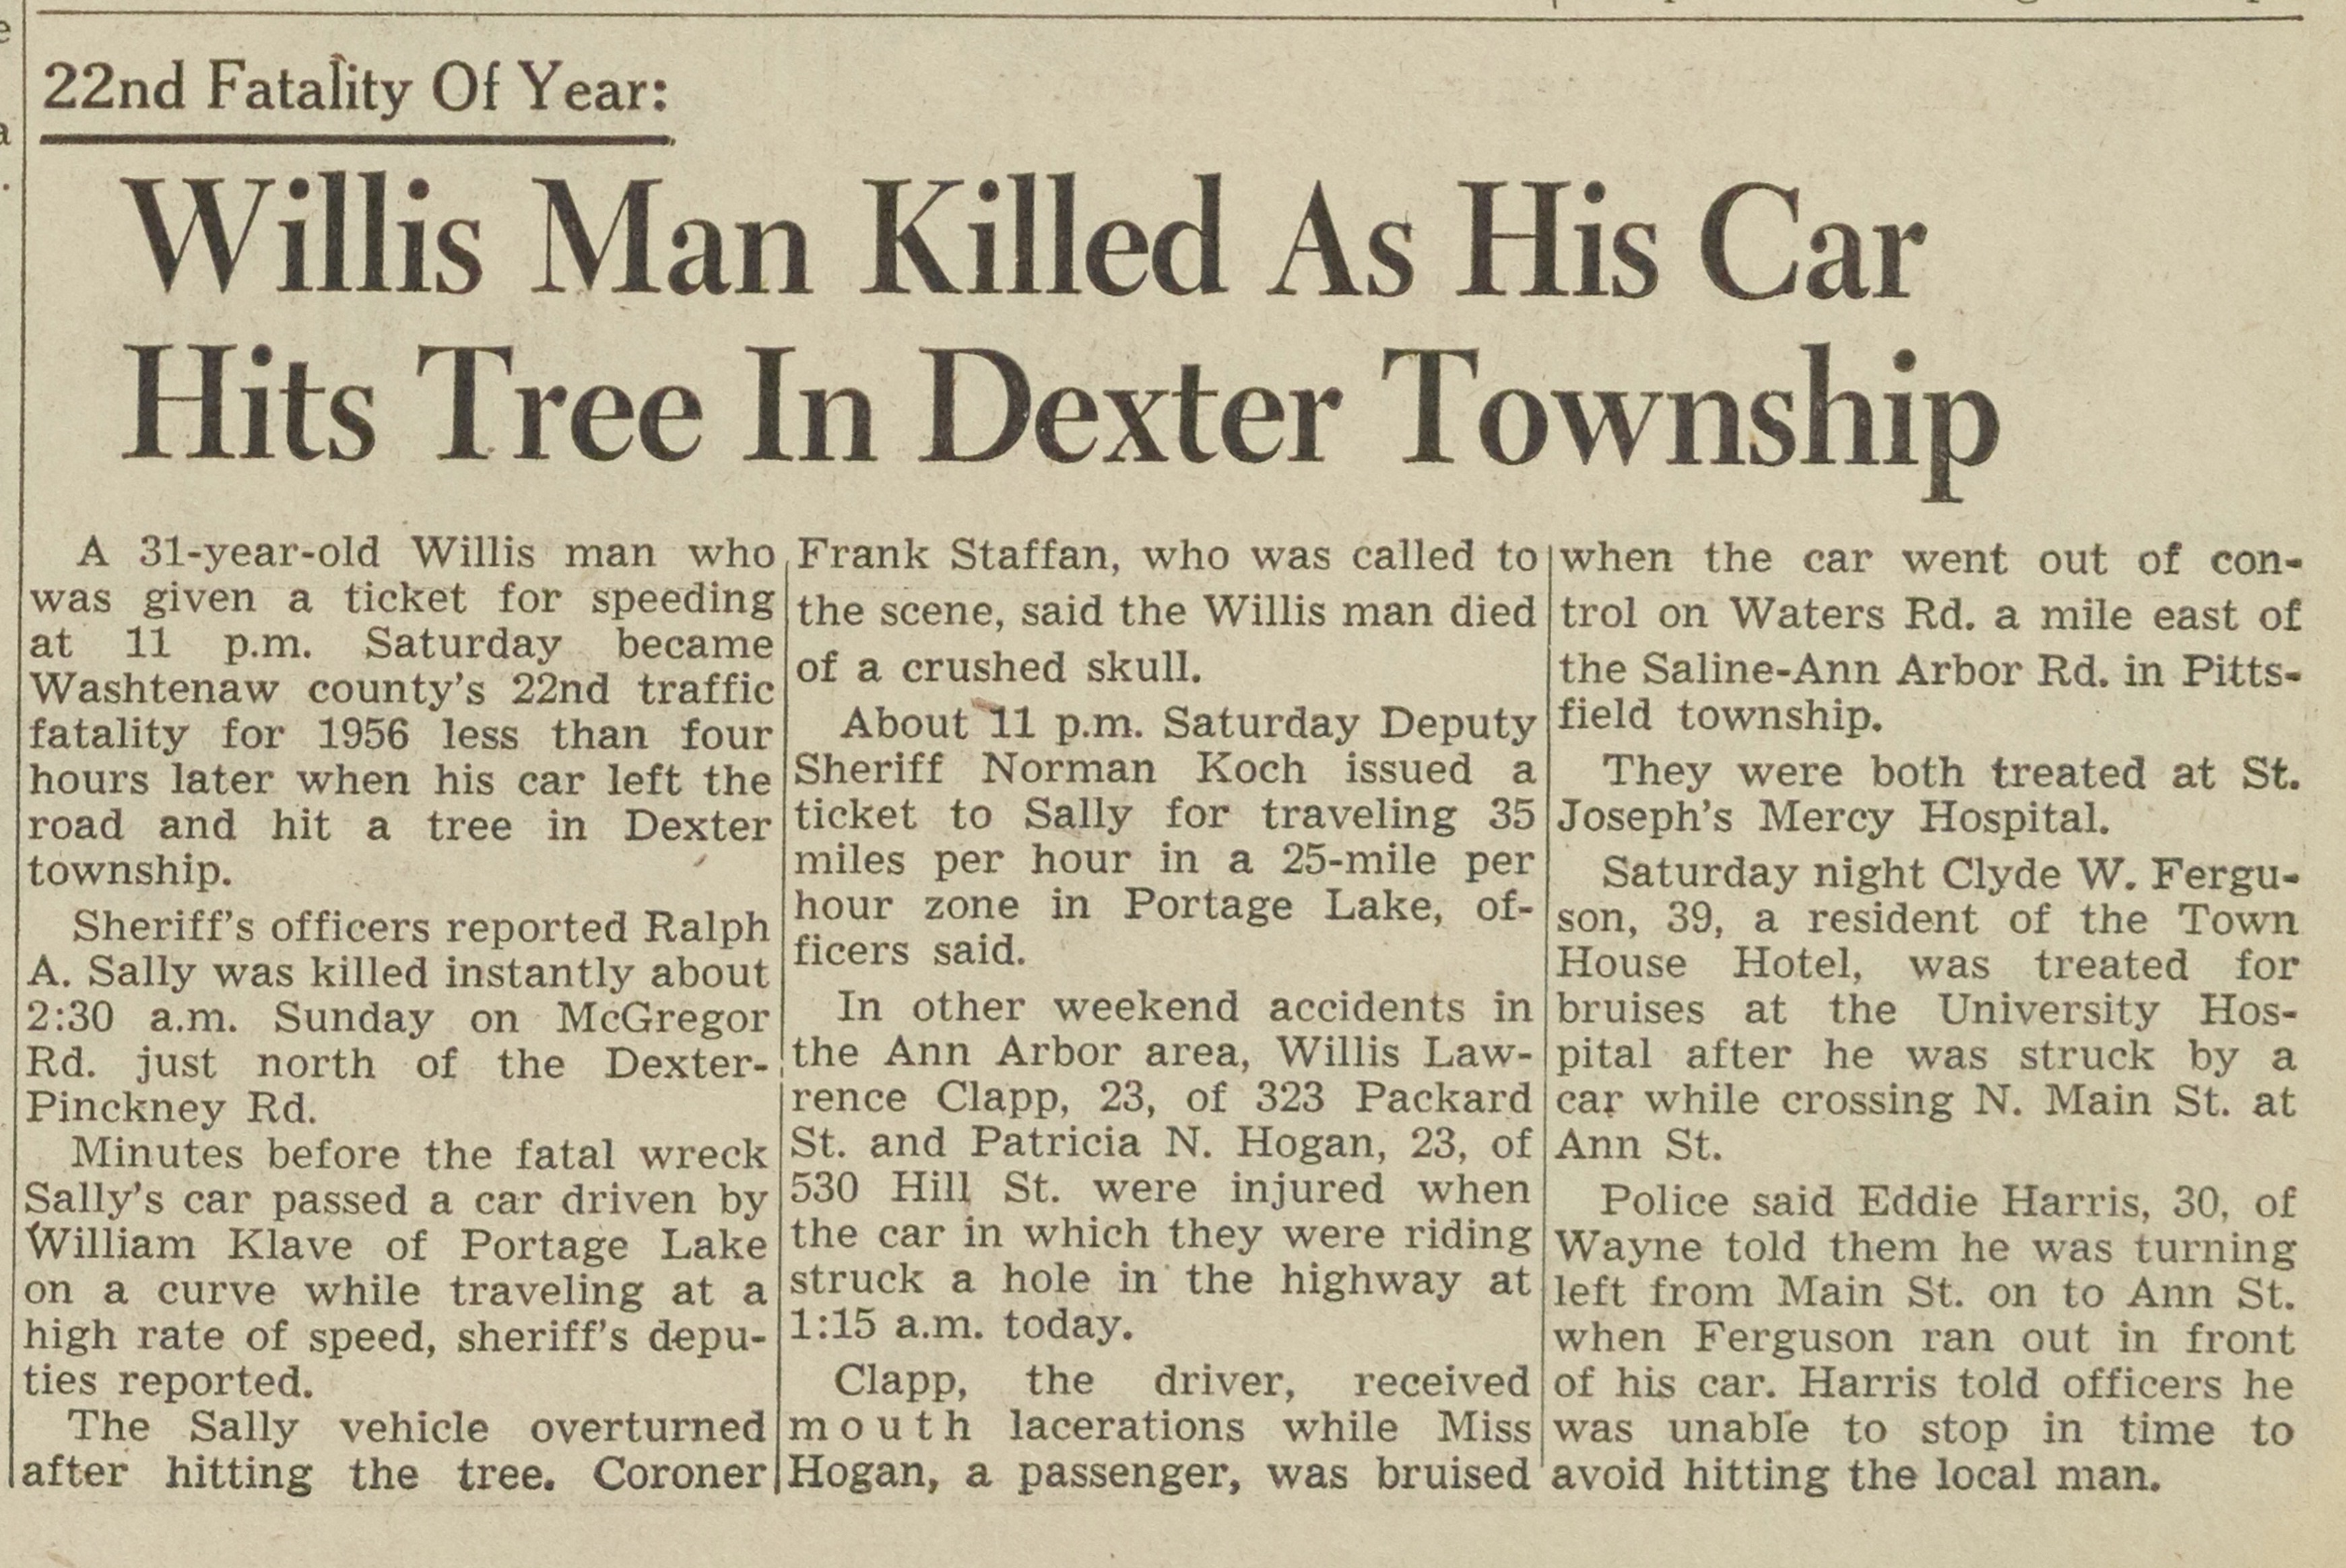 Willis Man Killed As His Car Hits Tree In Dexter Township image